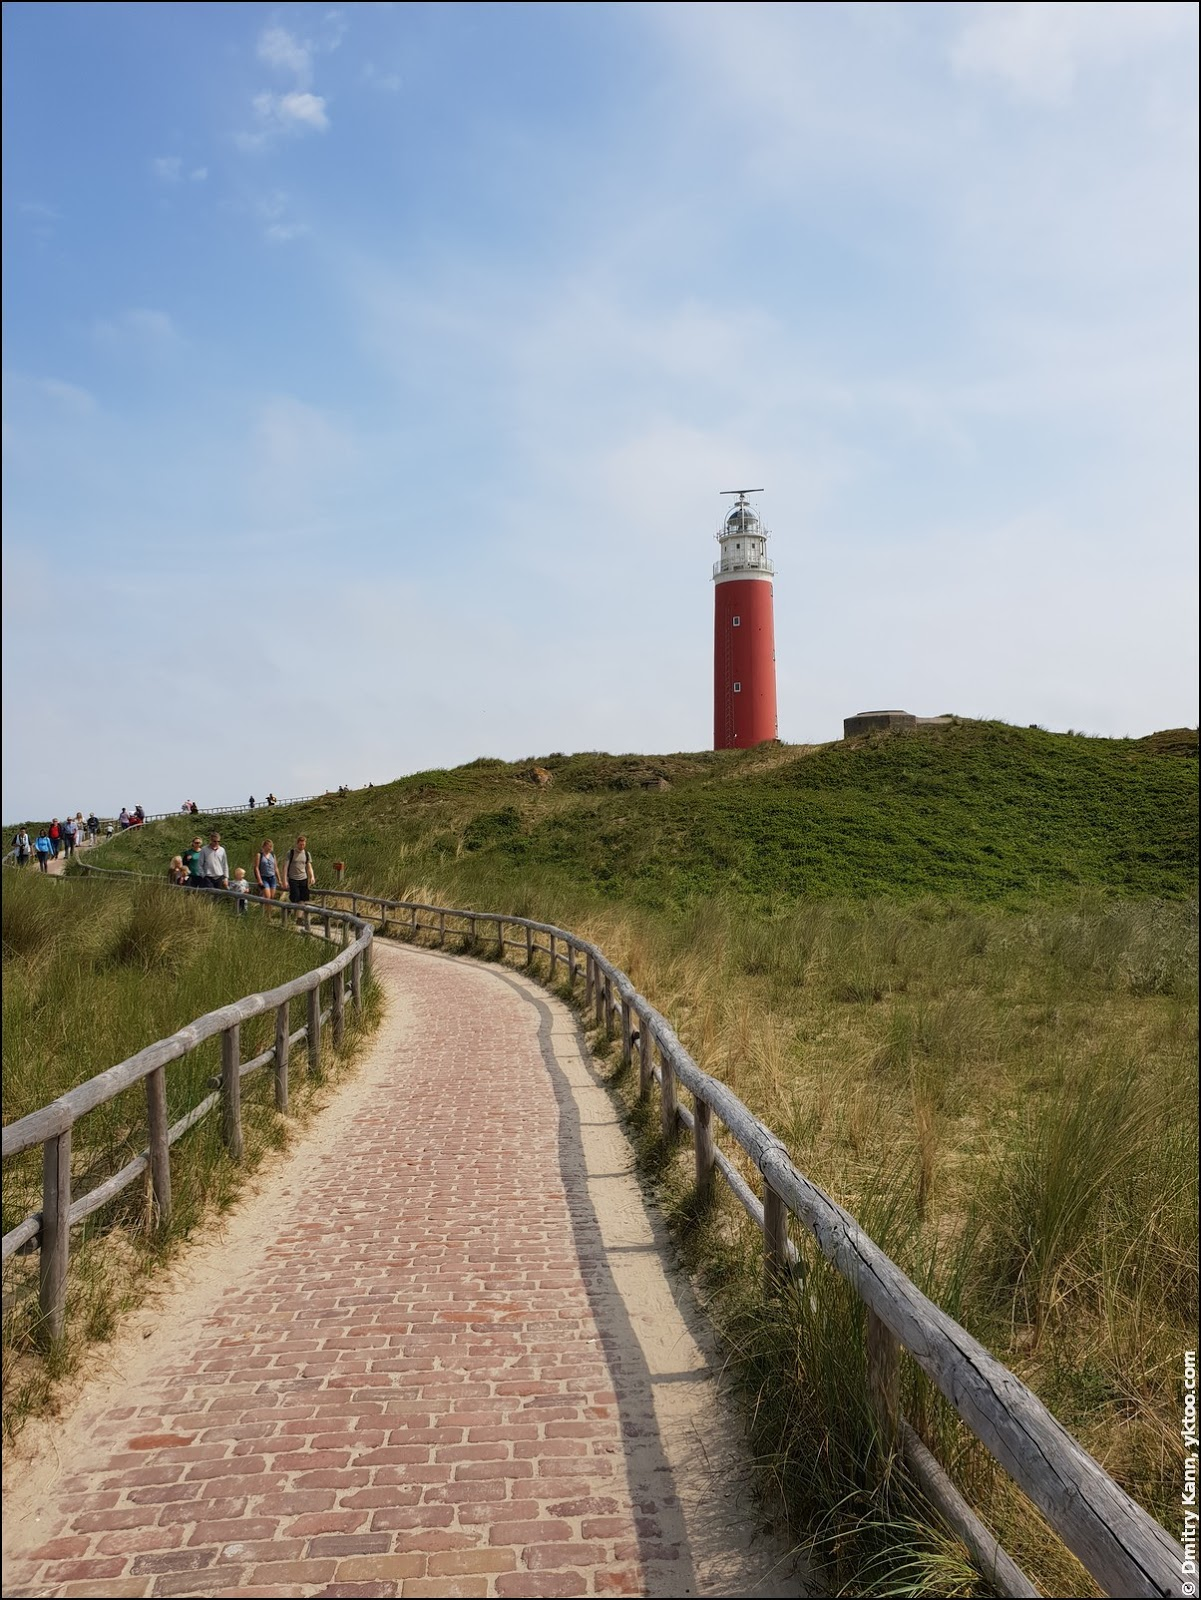 Texel's lighthouse